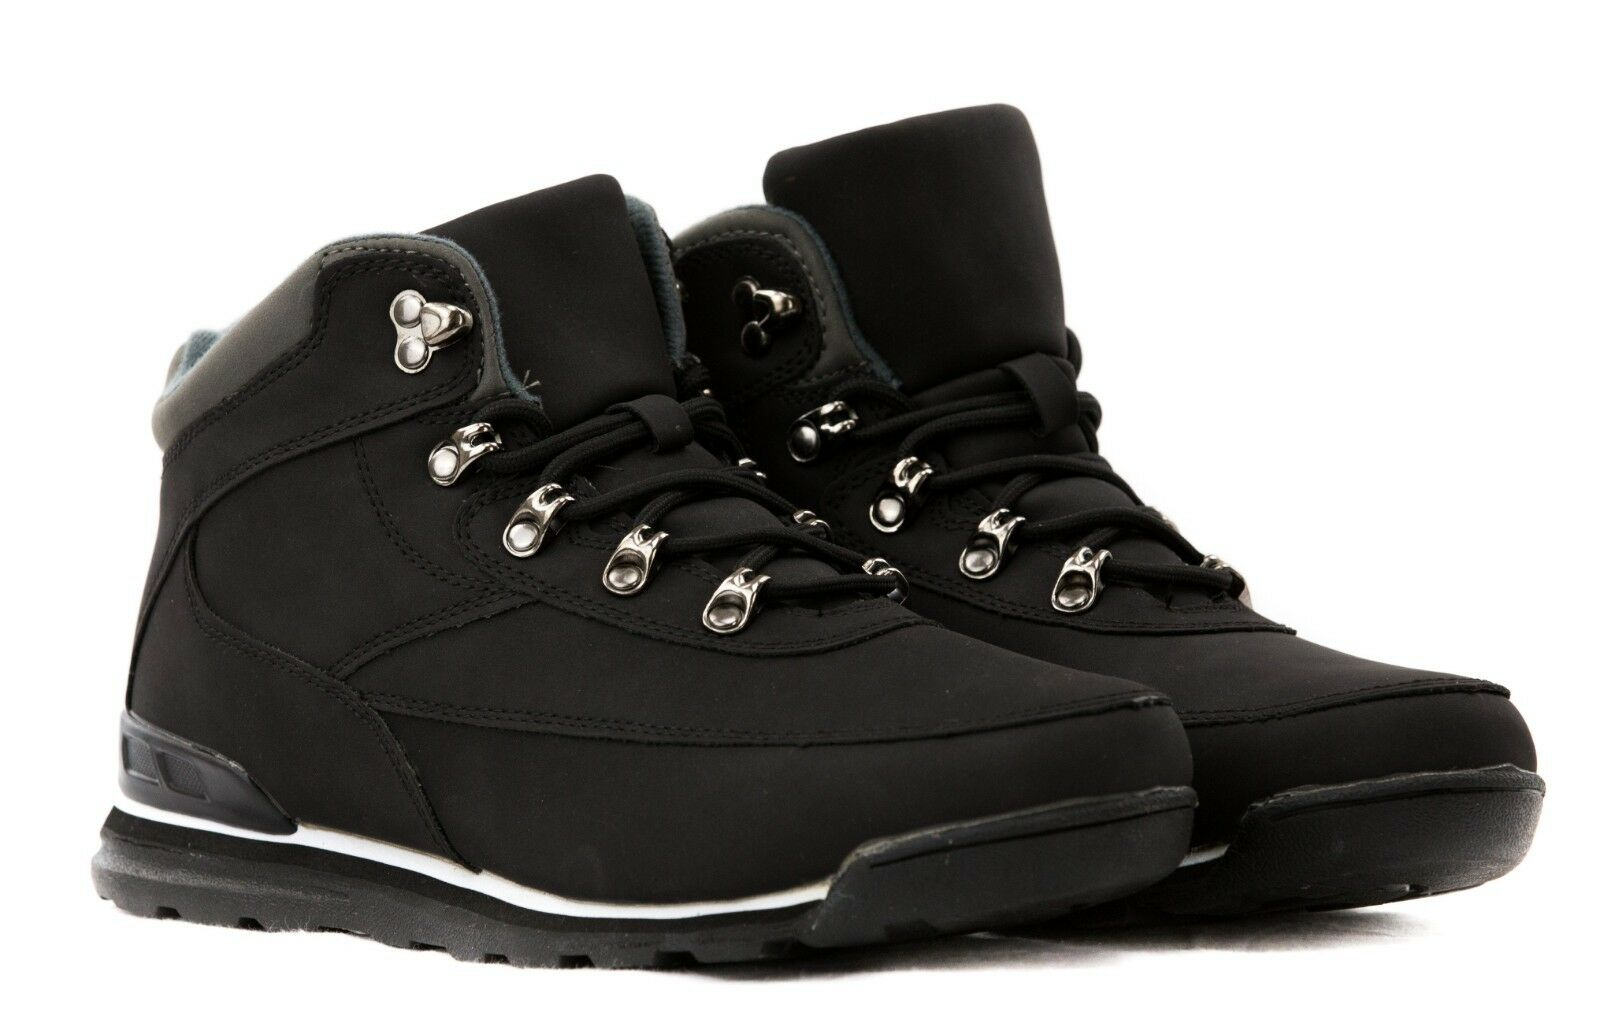 Boots Men's Shoes Woman PU Leather Combat Boots Sneakers T47